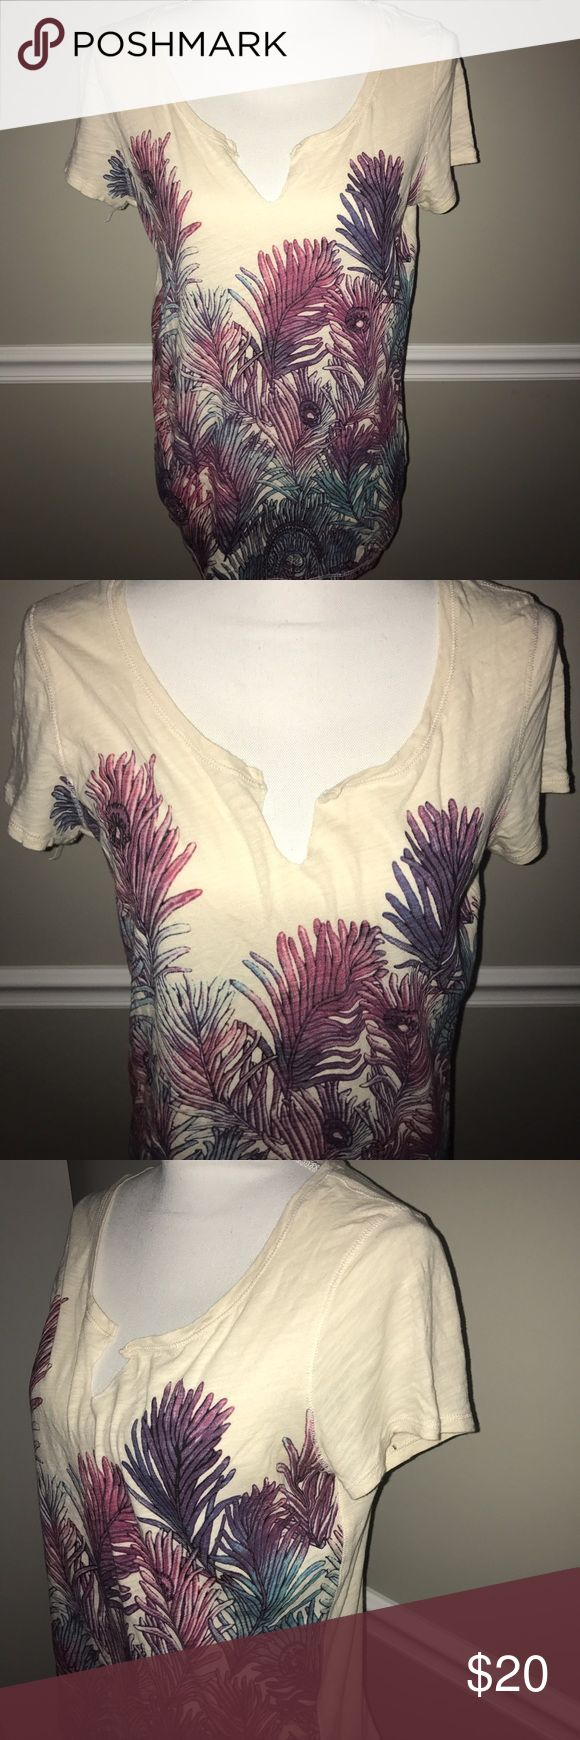 Lucky Brand Large Colorful Peacock Shirt Top Great condition! Vibrant colors! Lucky Brand Tops Blouses